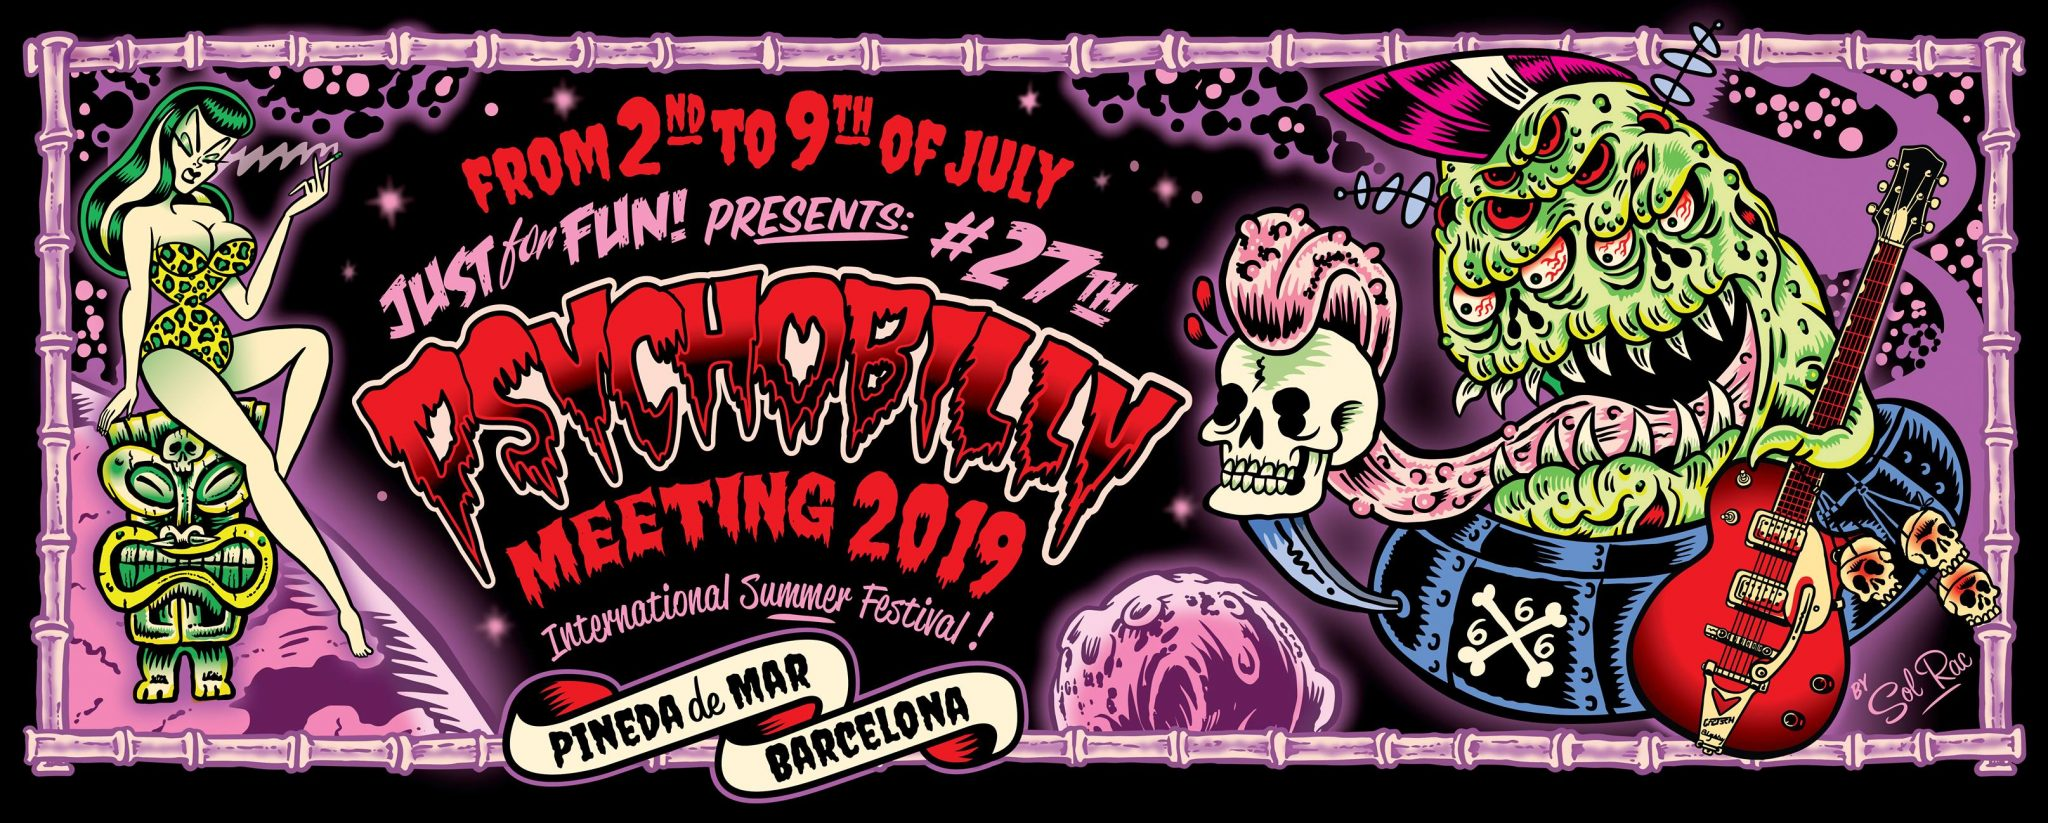 Psychobilly Meeting